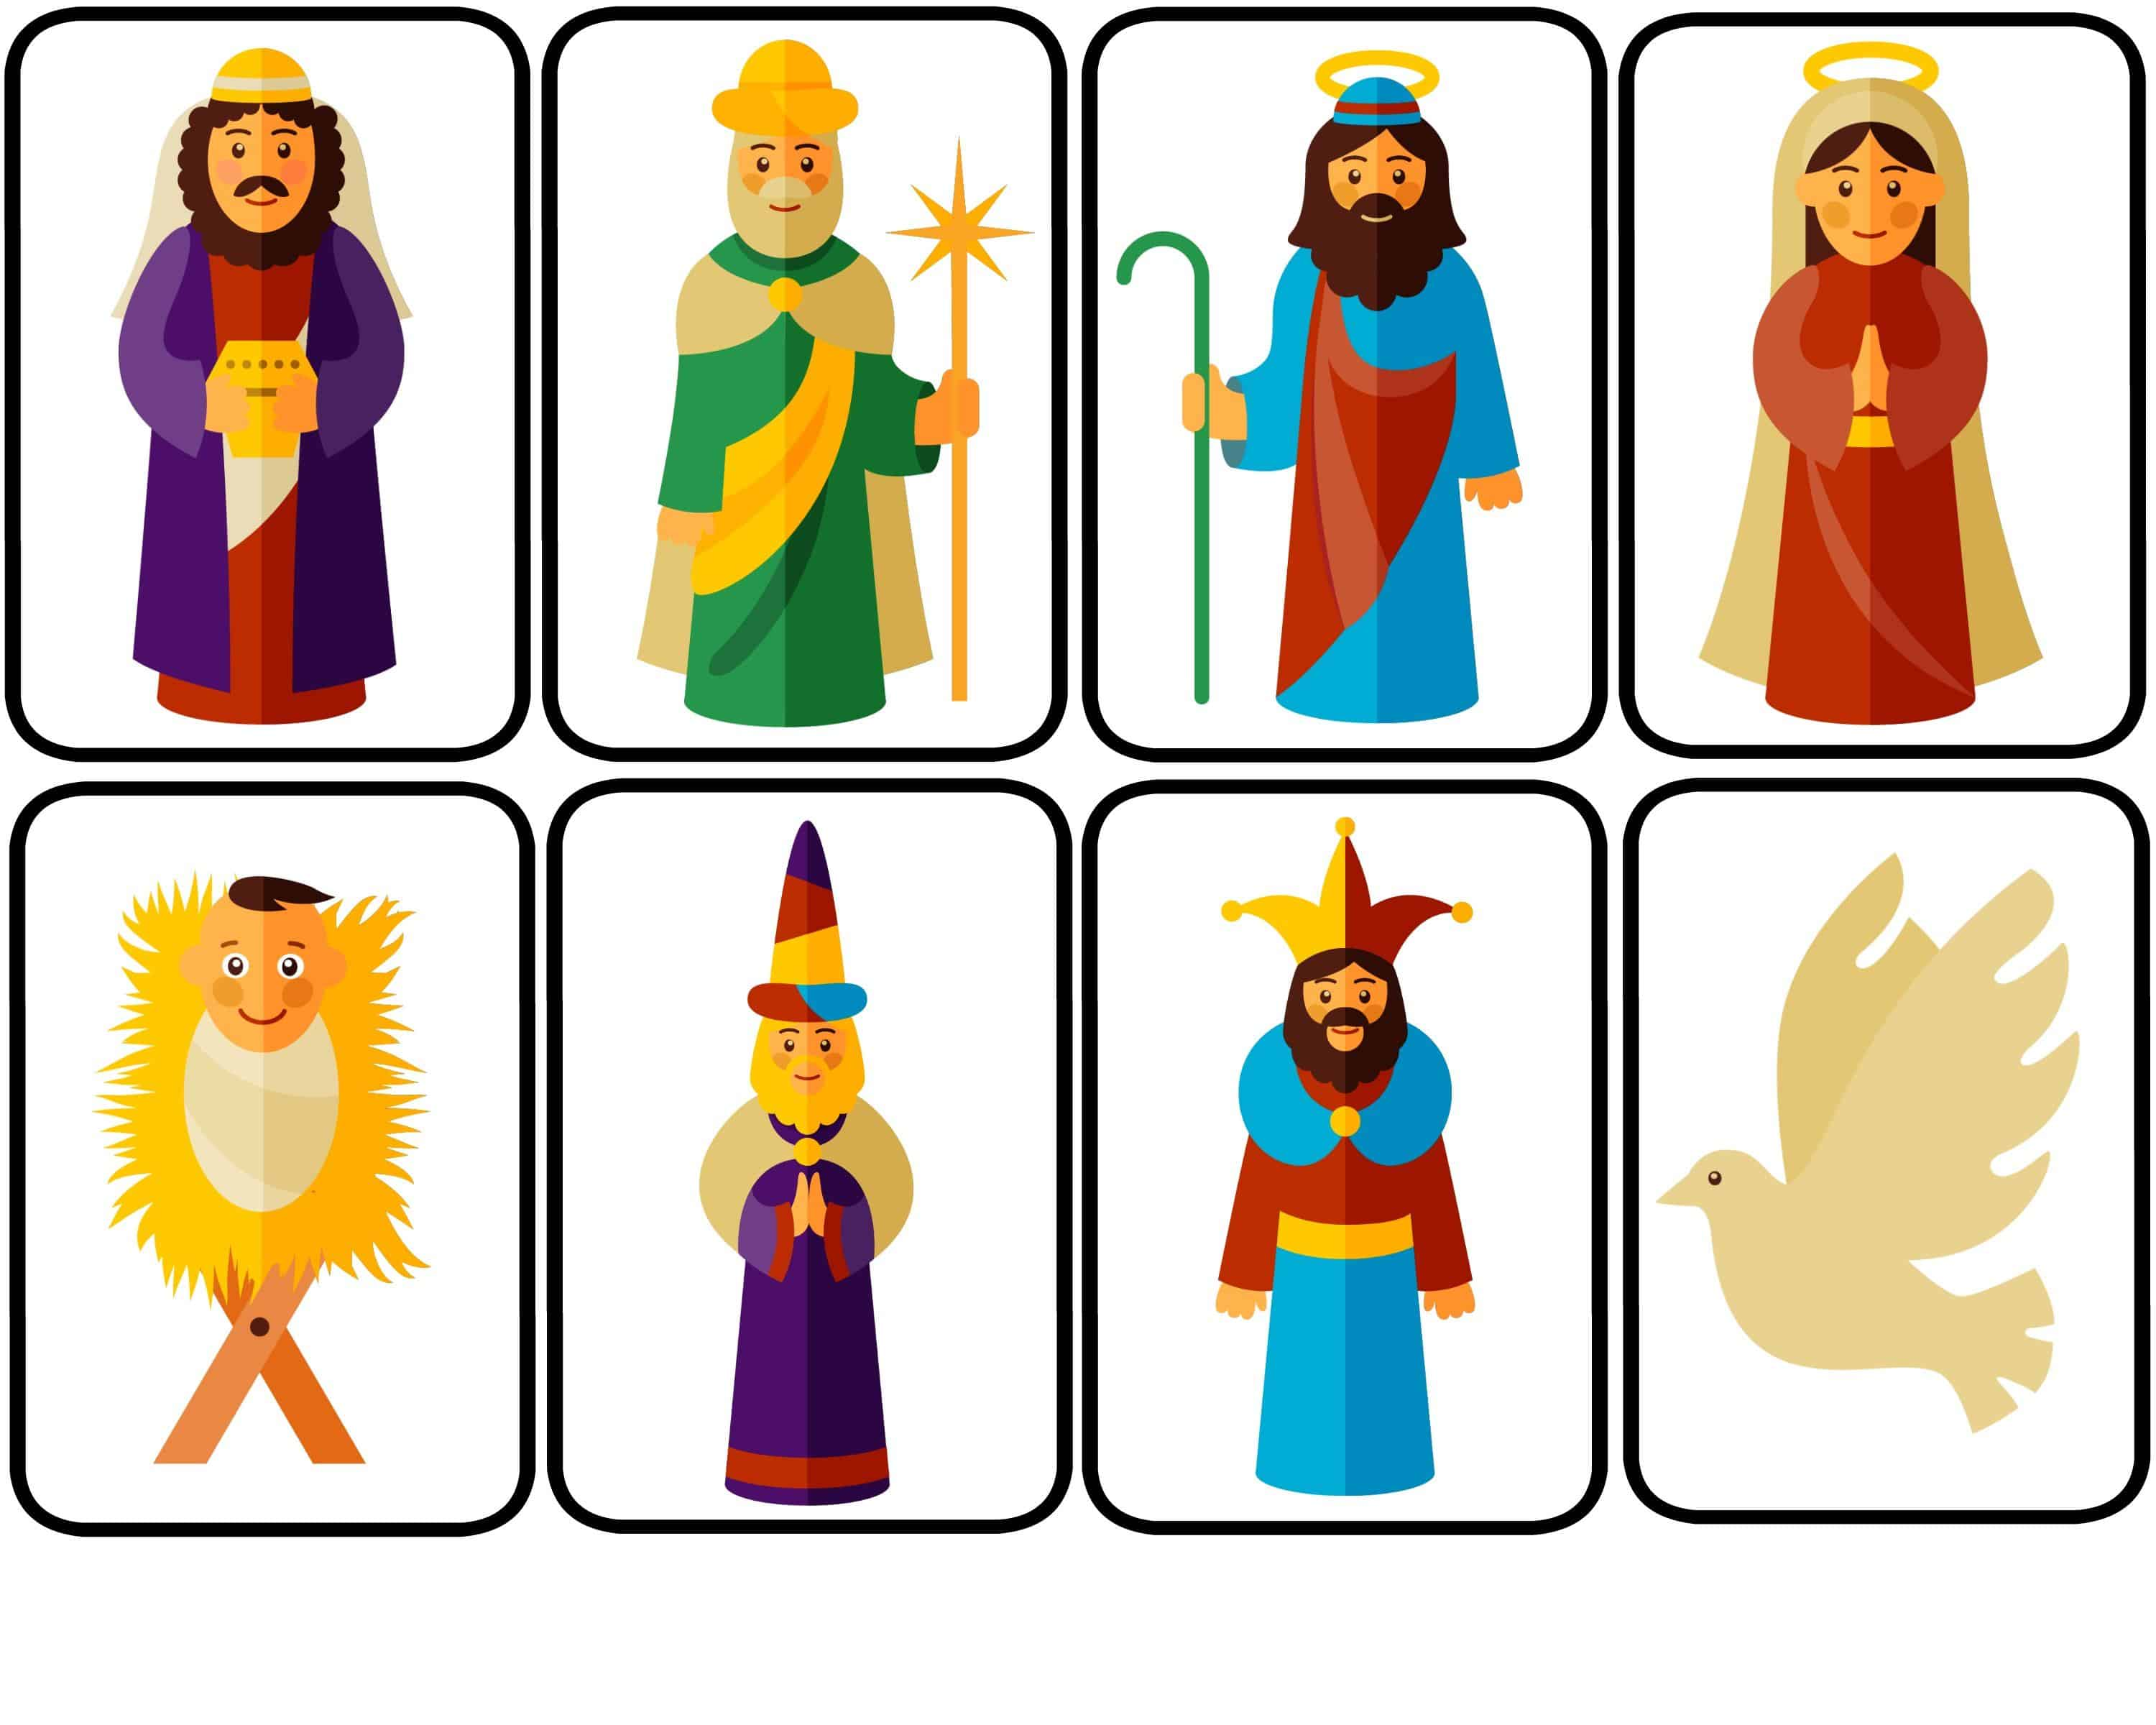 graphic about Printable Nativity named Nativity Puppets for Spectacular Participate in with Totally free Printable